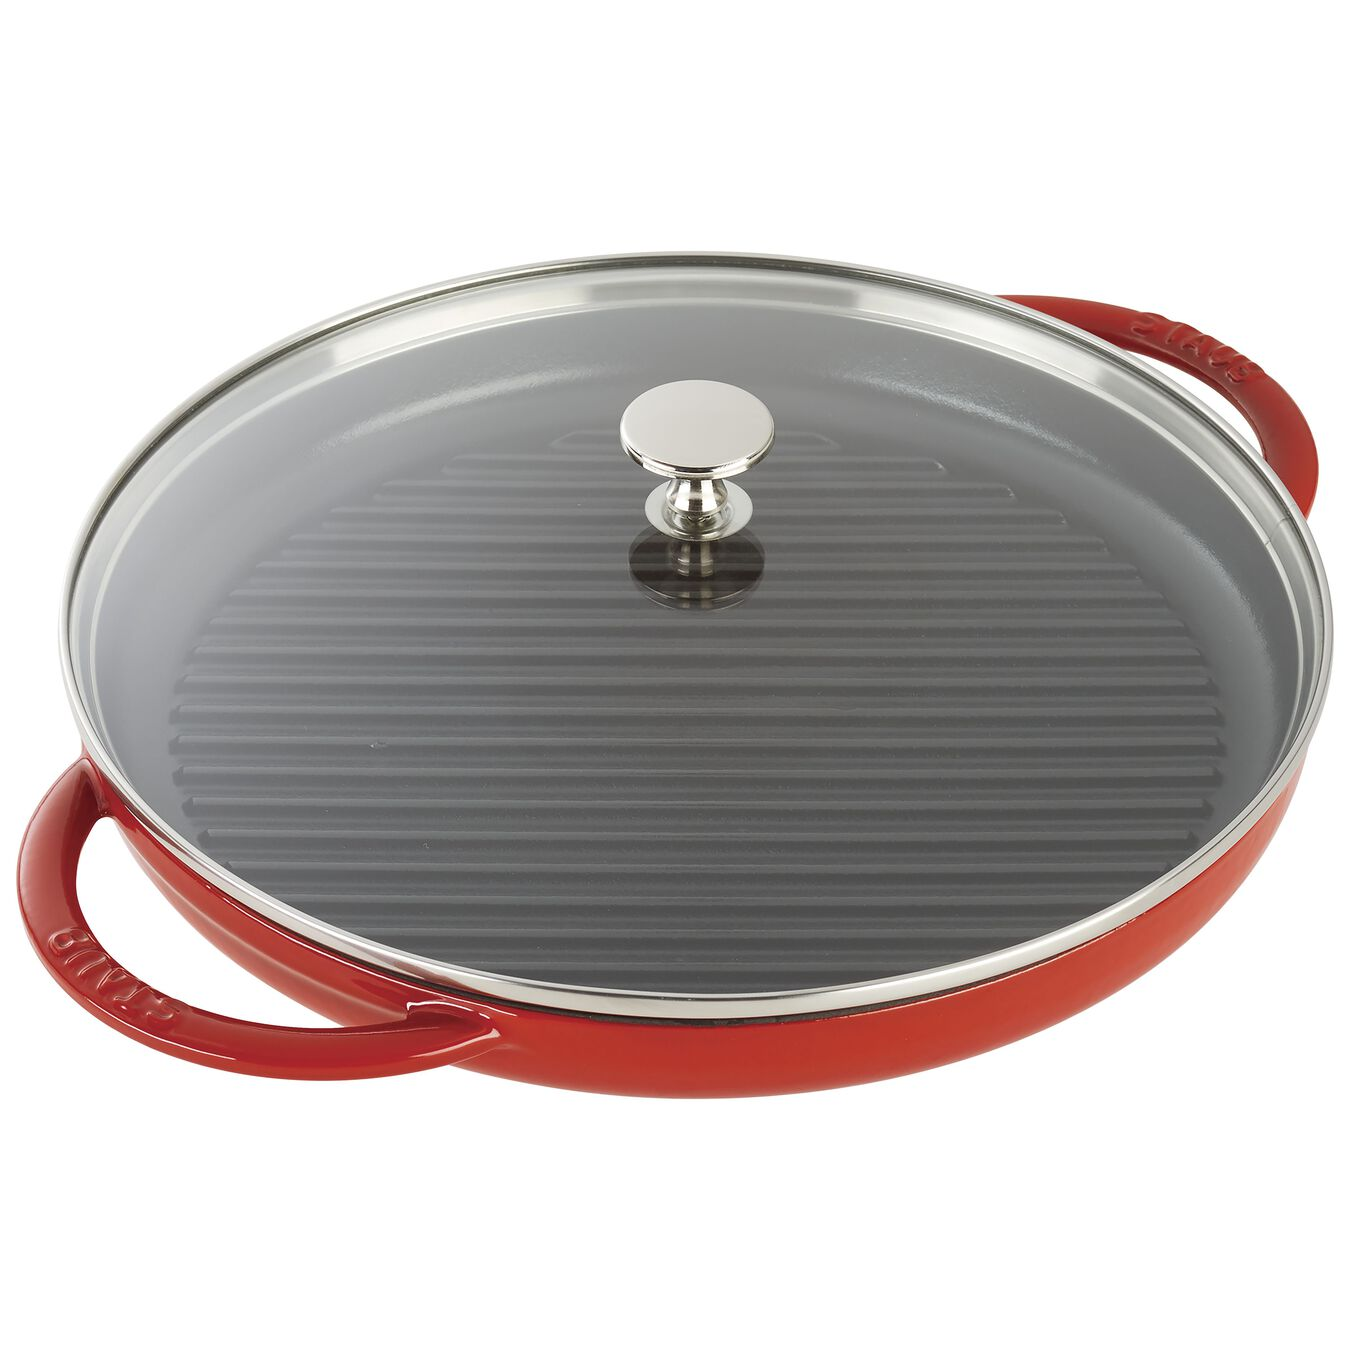 30 cm / 12 inch Cast iron round Grill pan with glass lid, Cherry,,large 2